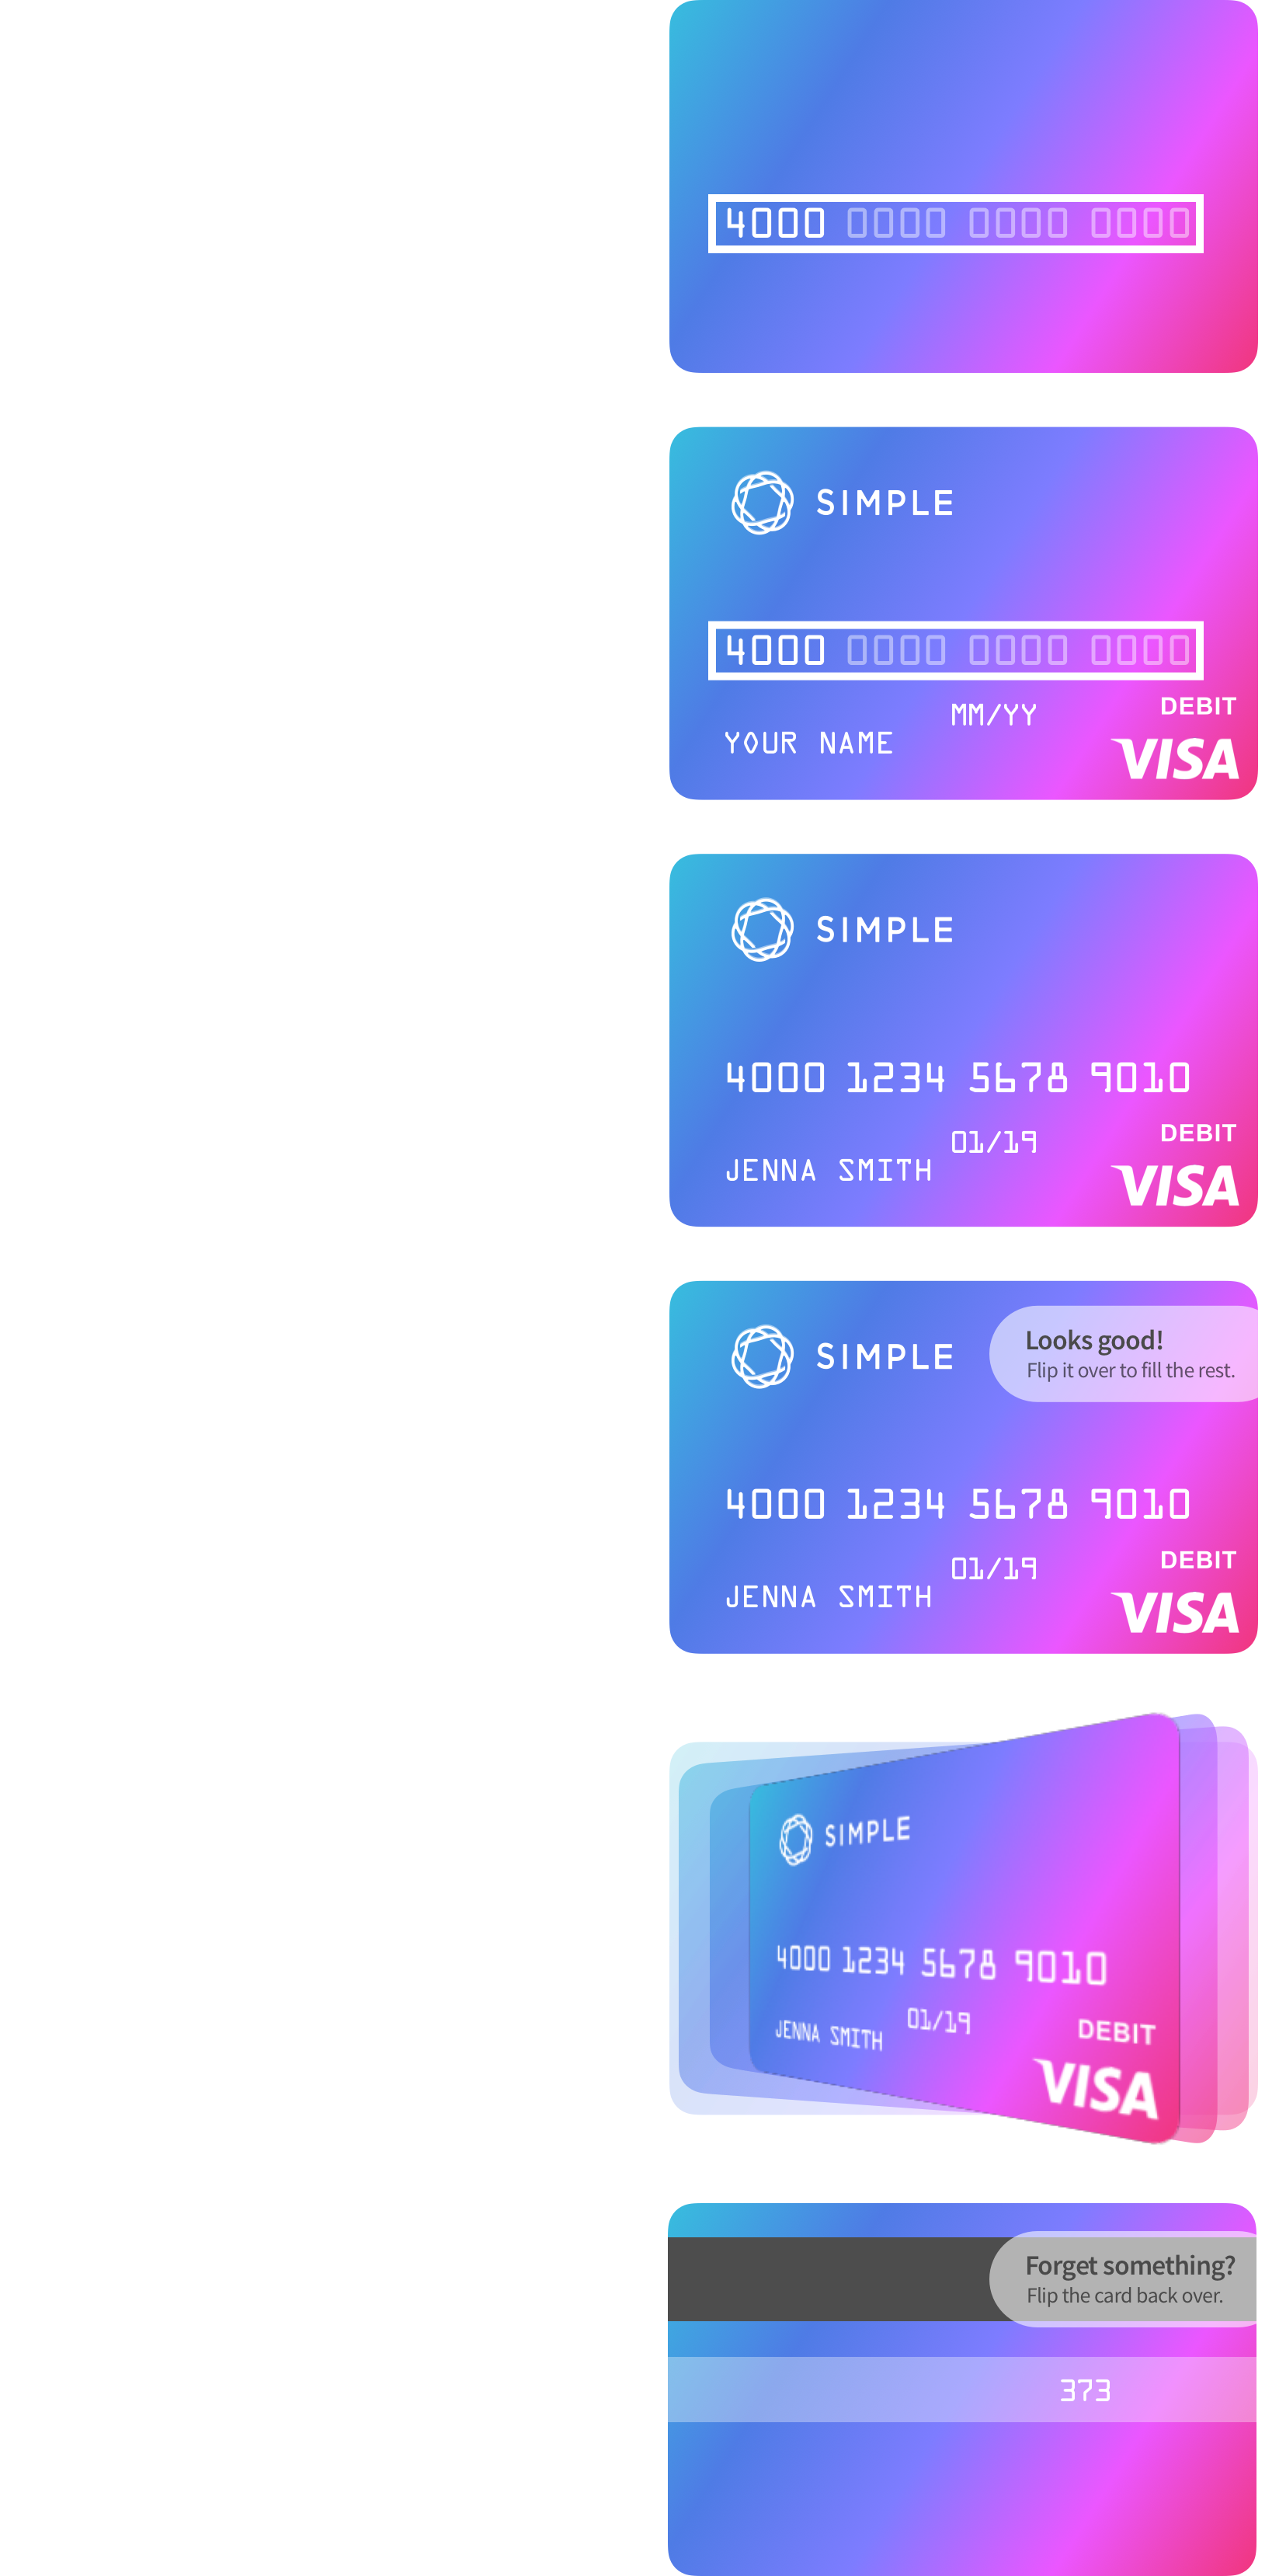 Redesigning the Credit Card Input